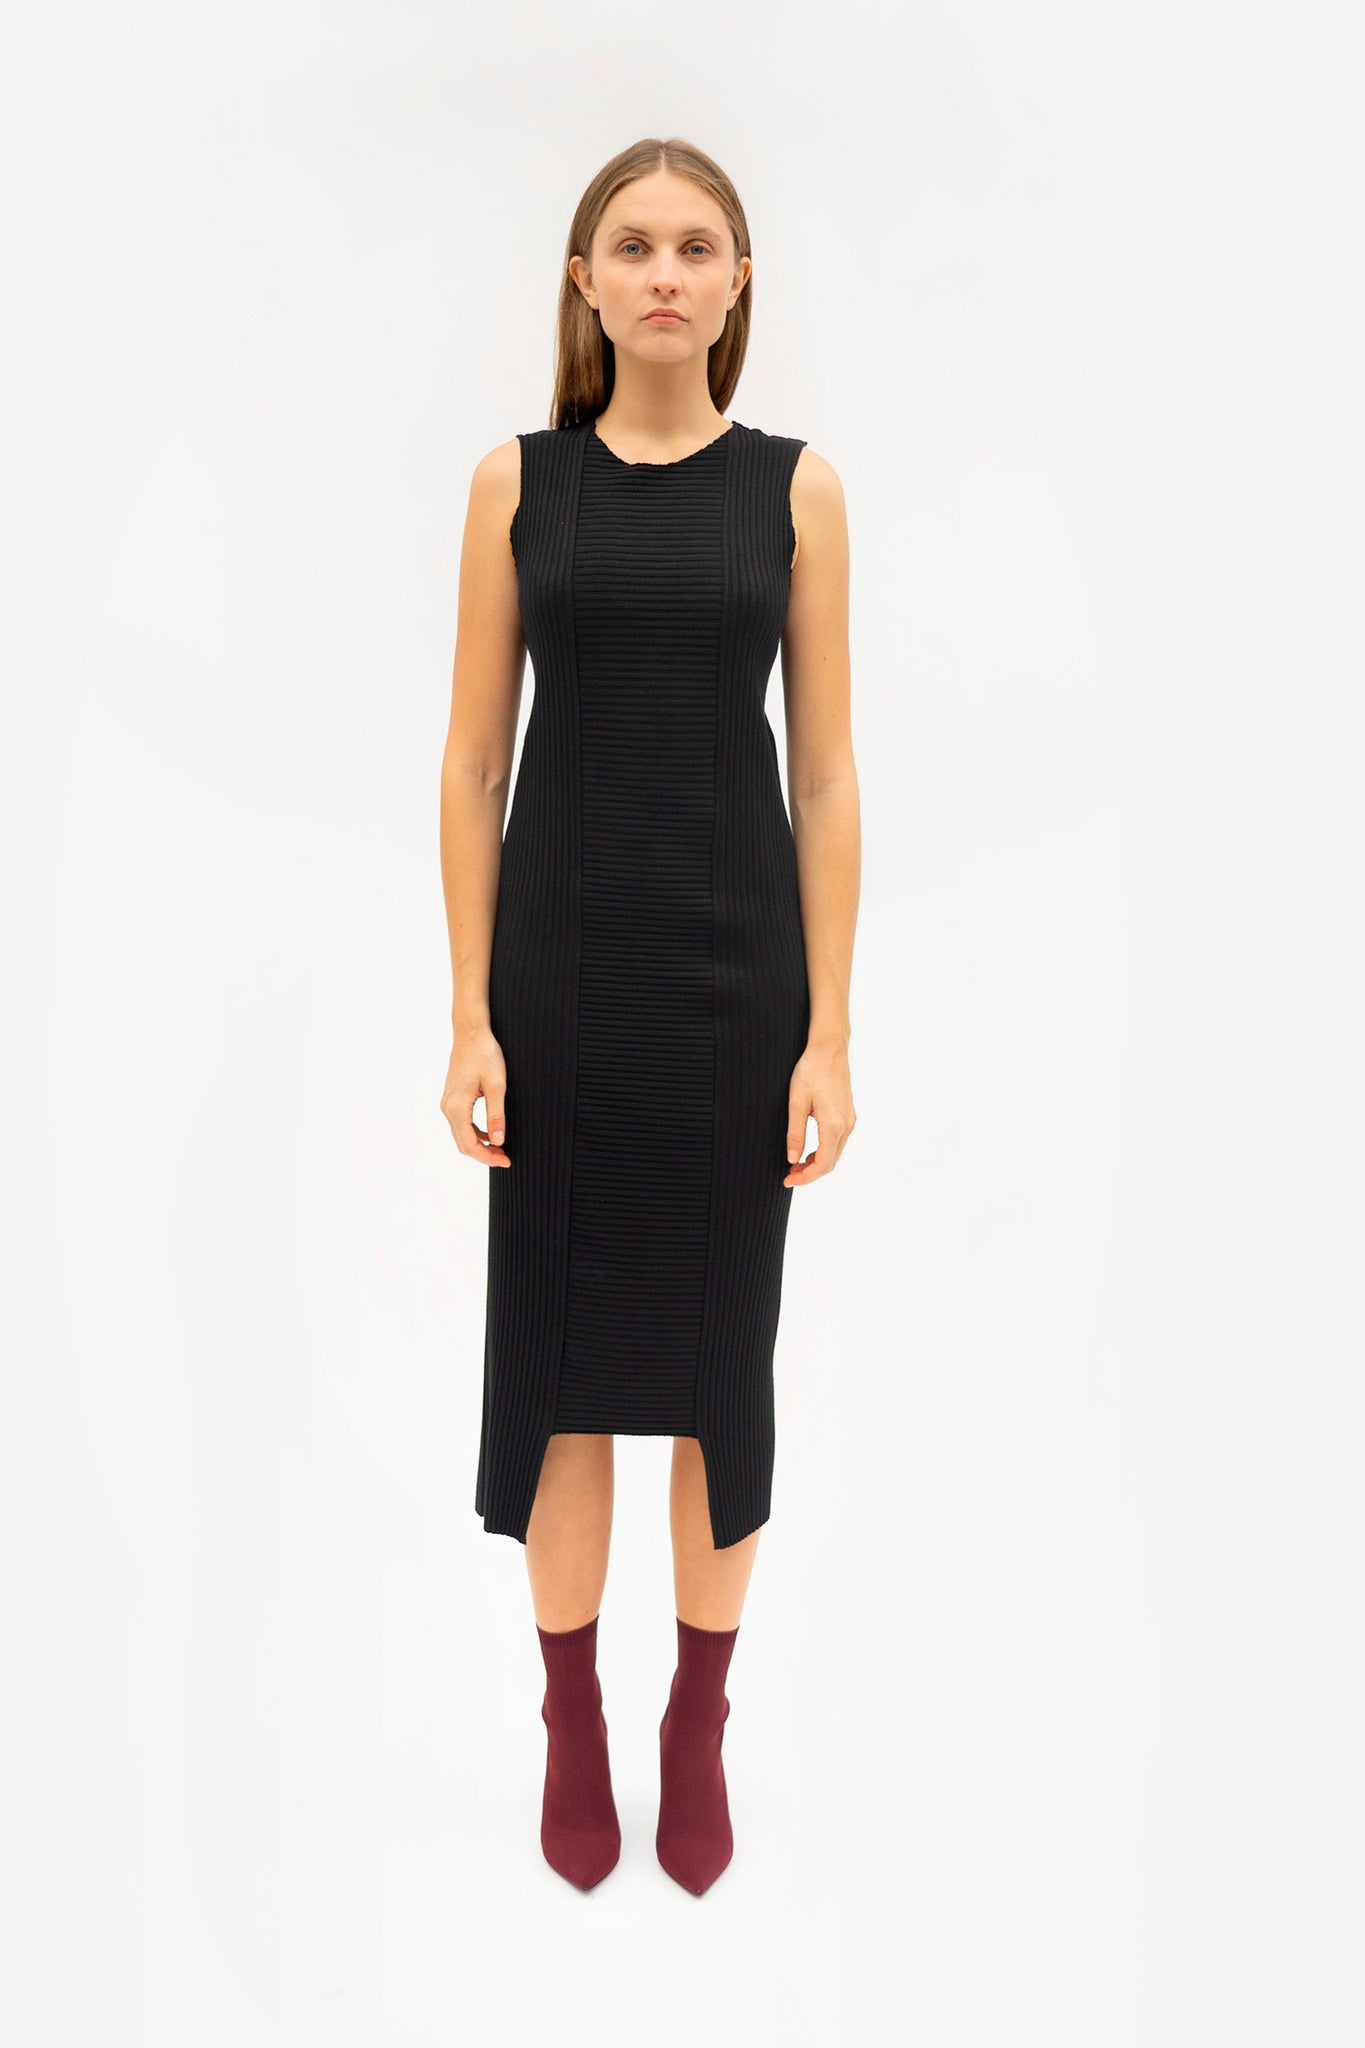 Ade Velkon - Rib Knit Dress